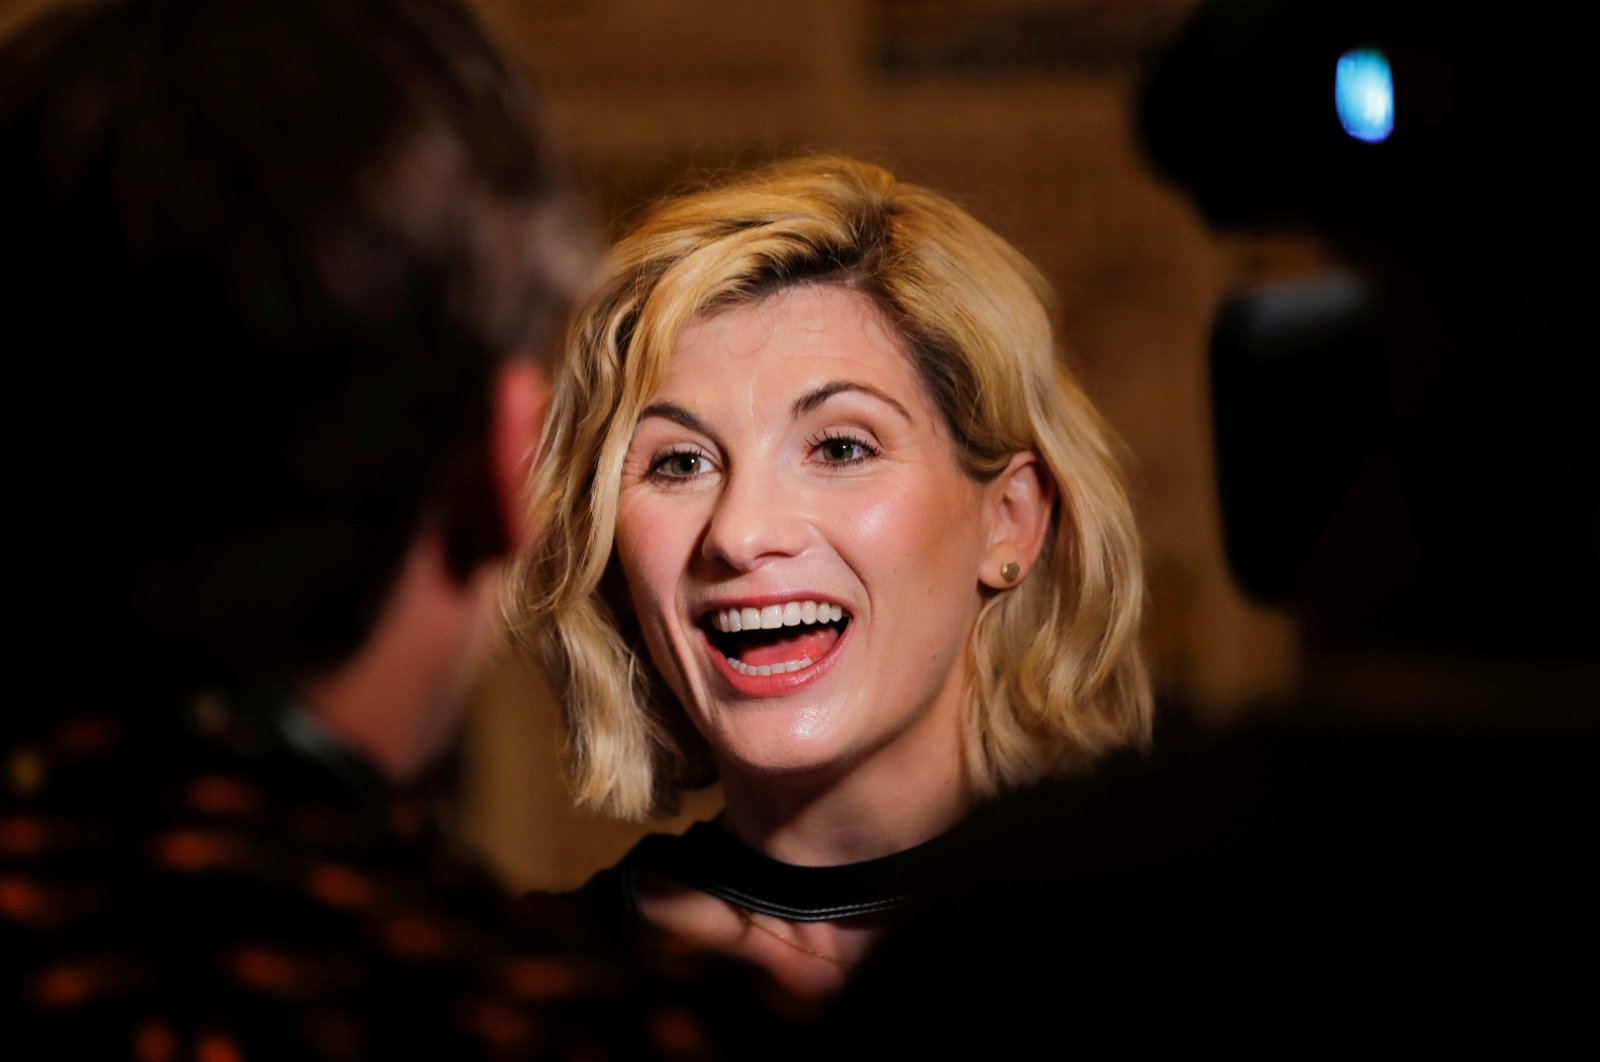 """Jodie Whittaker, """"The Doctor"""" from the cast of the BBC show """"Doctor Who,"""" attends the pop culture convention Comic Con in San Diego, California, U.S., July 19, 2018.  (Reuters Photo)"""